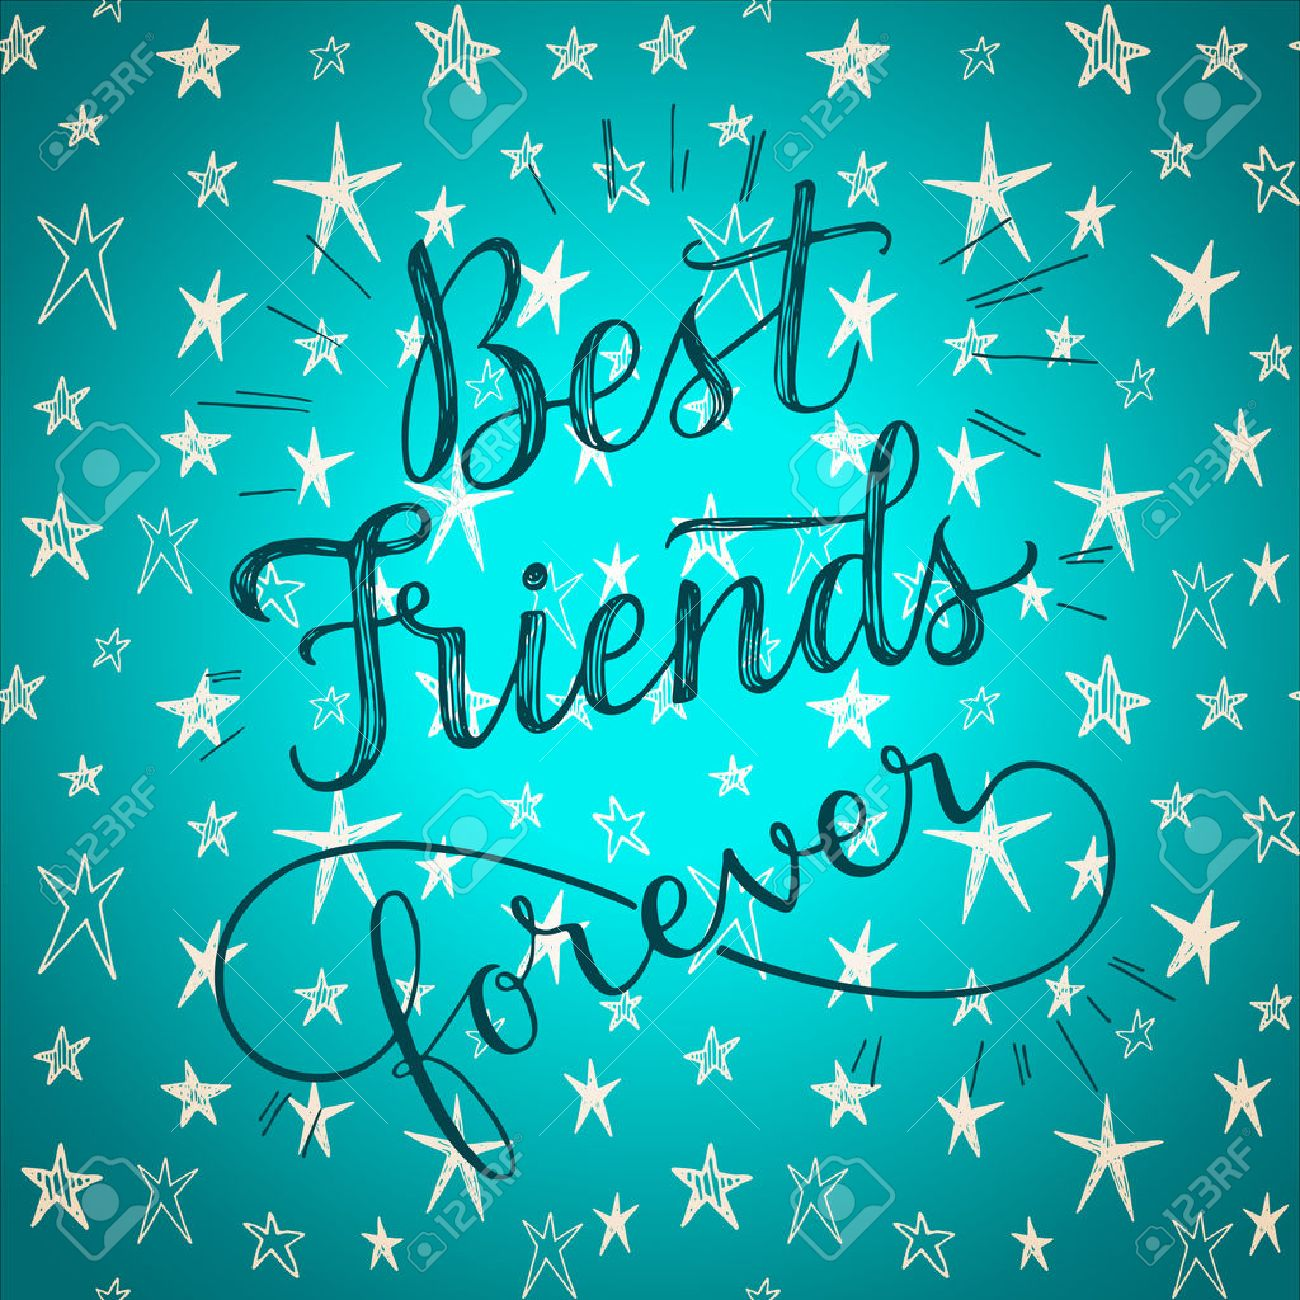 Best Friends Forever Hand Drawn Phrase On A Cute Stars Vector